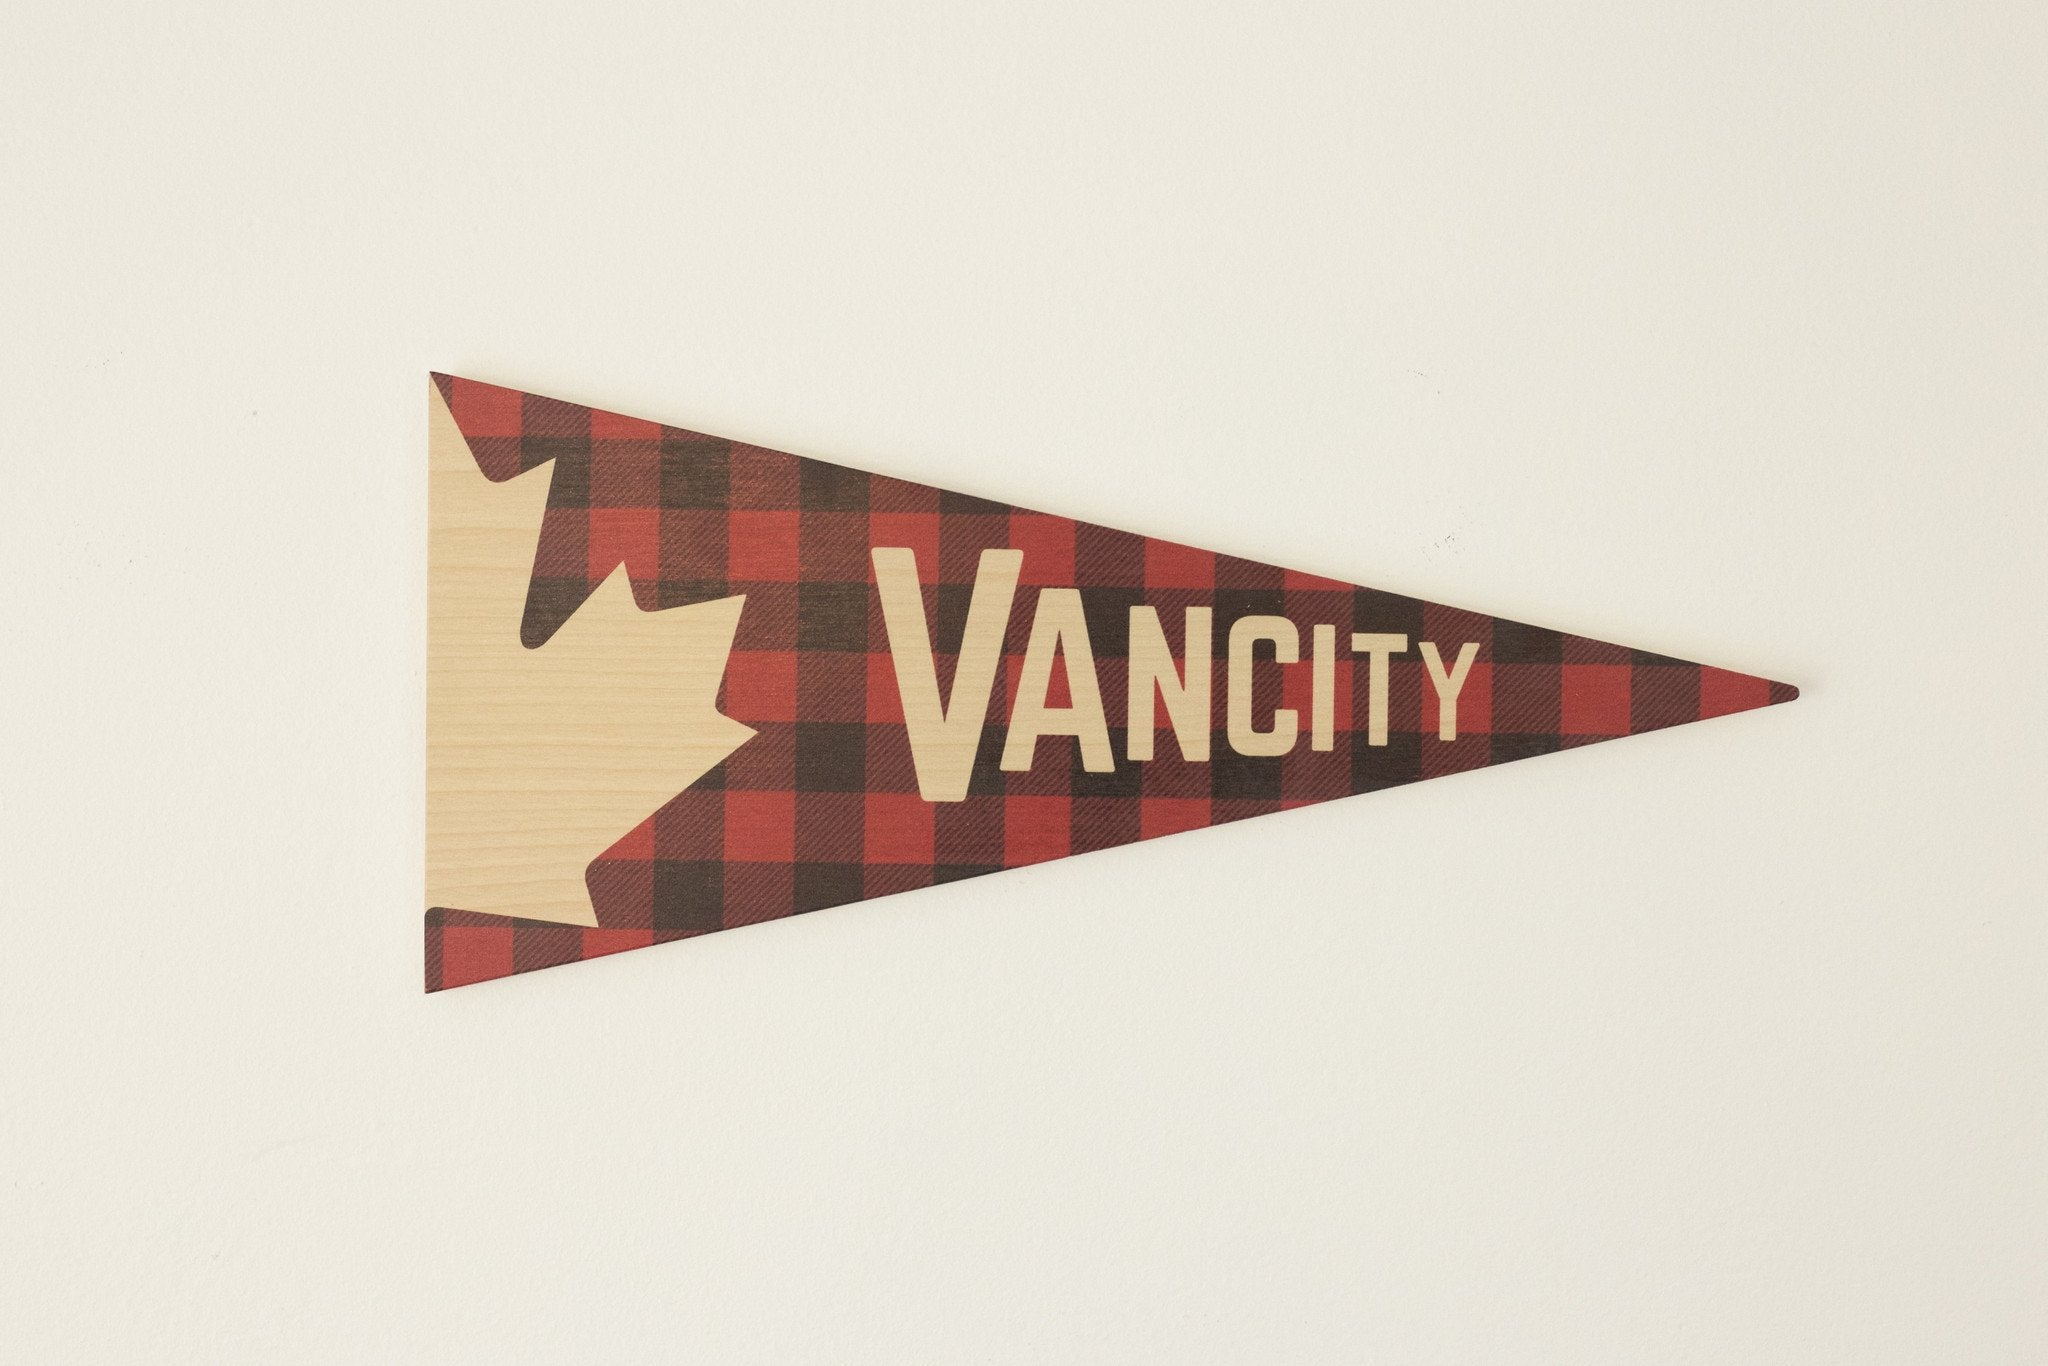 Clearance: Van City Pennant